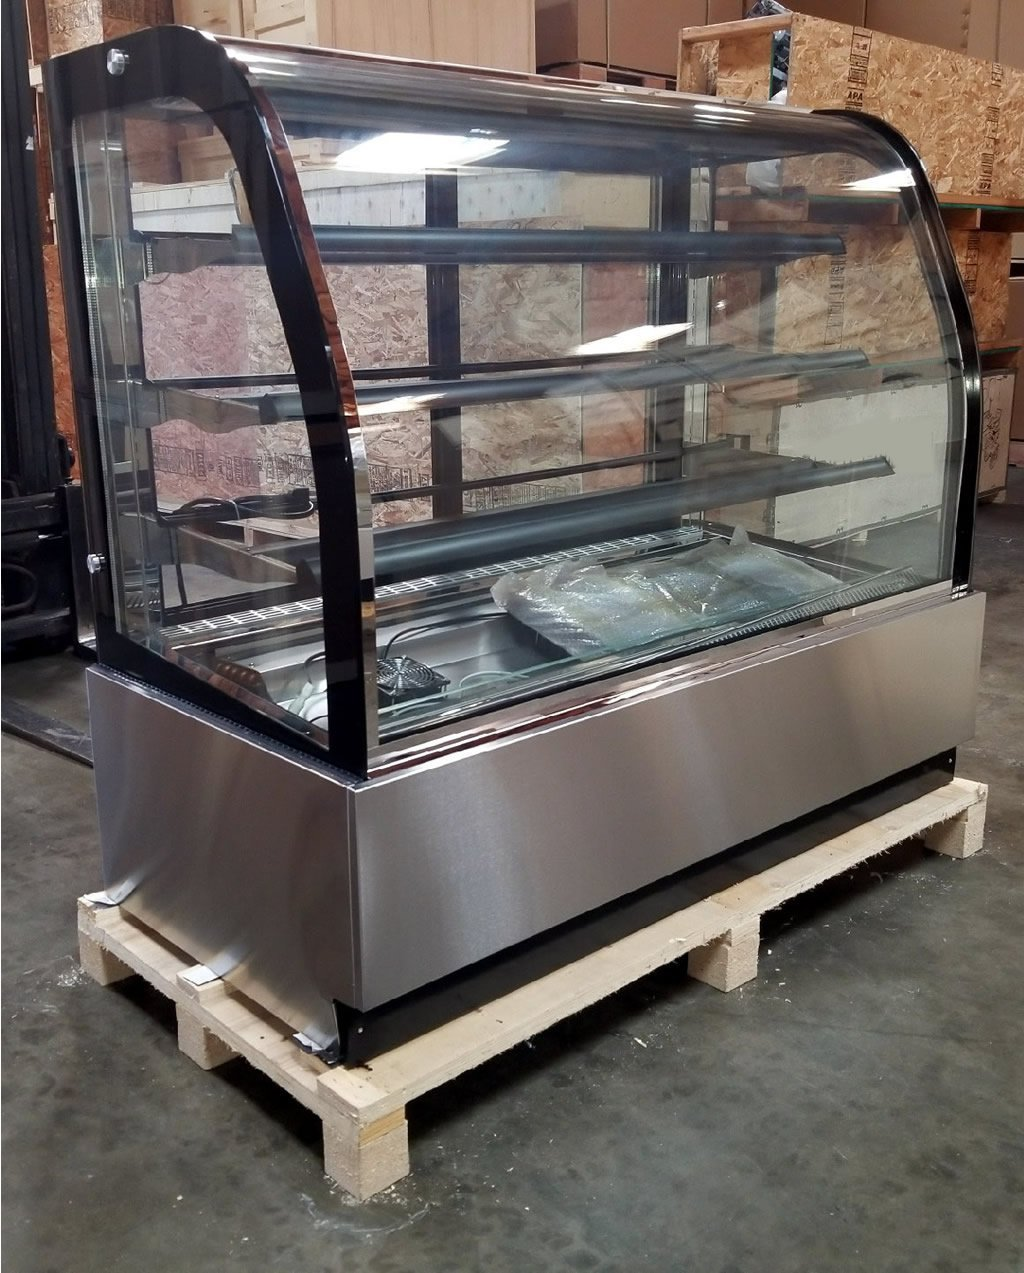 Countertop Bakery Case 59 Quot Curved Glass Bakery Countertop Refrigerator Display